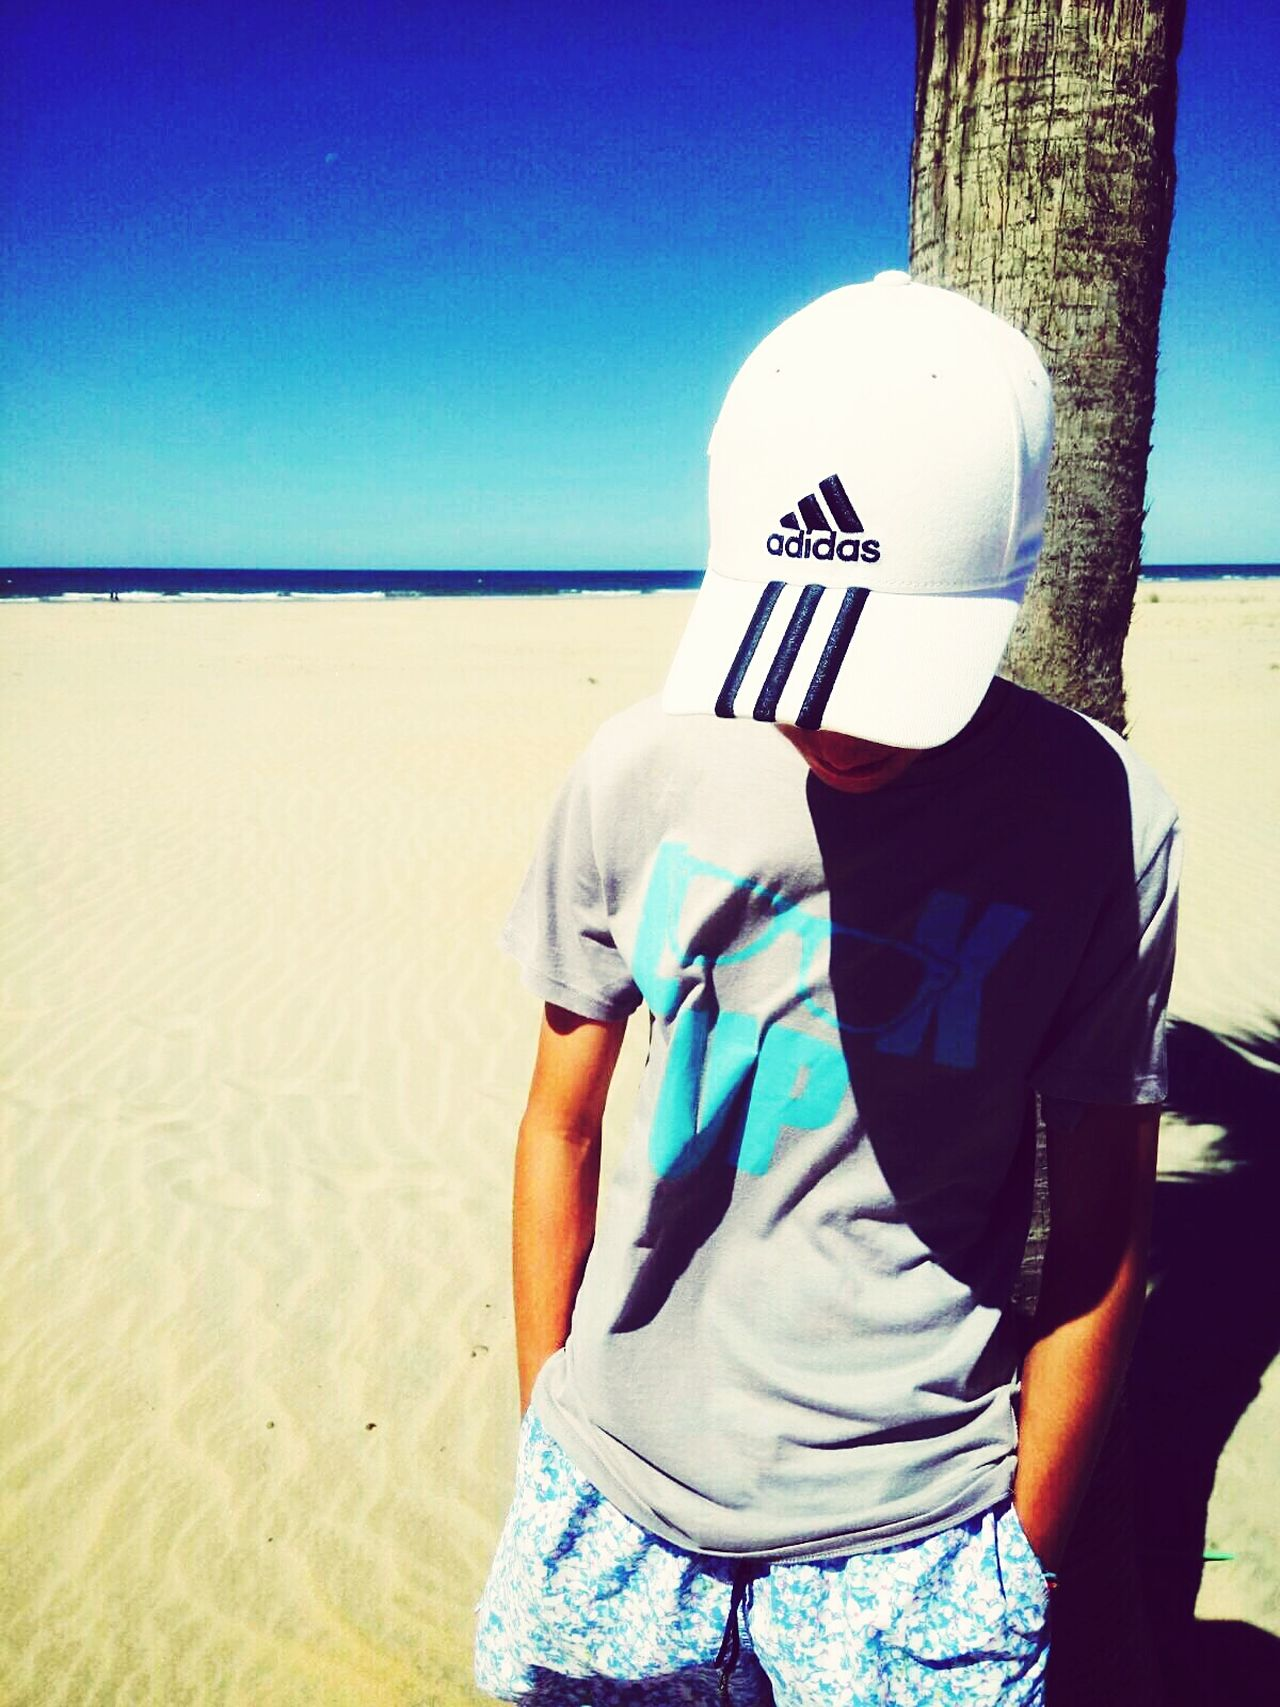 Beach People Sand Casual Clothing One Person Only Men Adult One Man Only Standing Sea Arts Culture And Entertainment Day Blue Adults Only Outdoors Sky Headwear Young Adult First Eyeem Photo